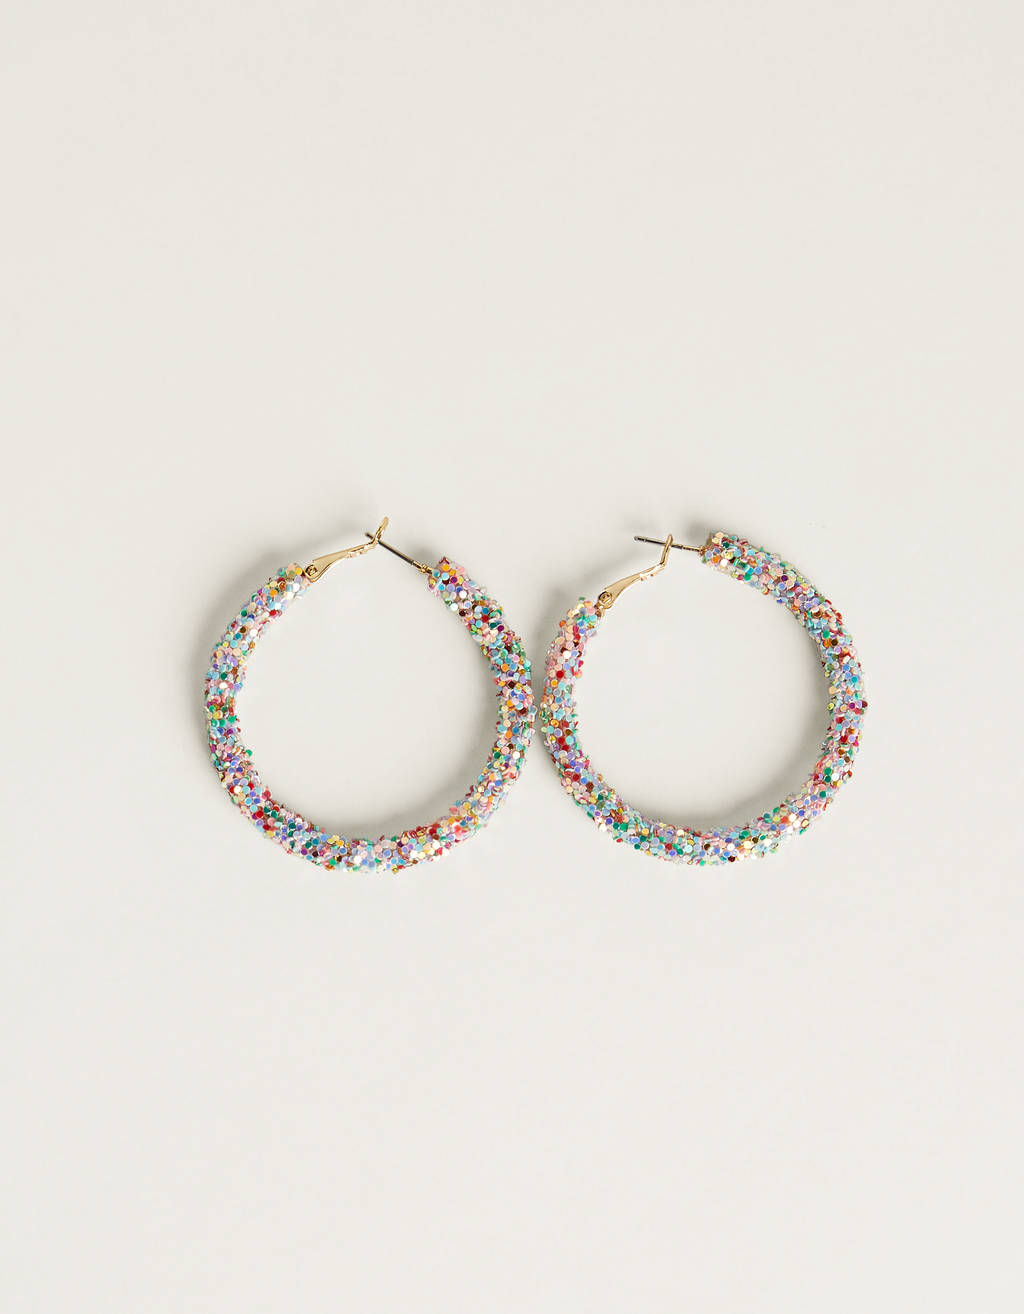 Maxi hoop earrings with rhinestones